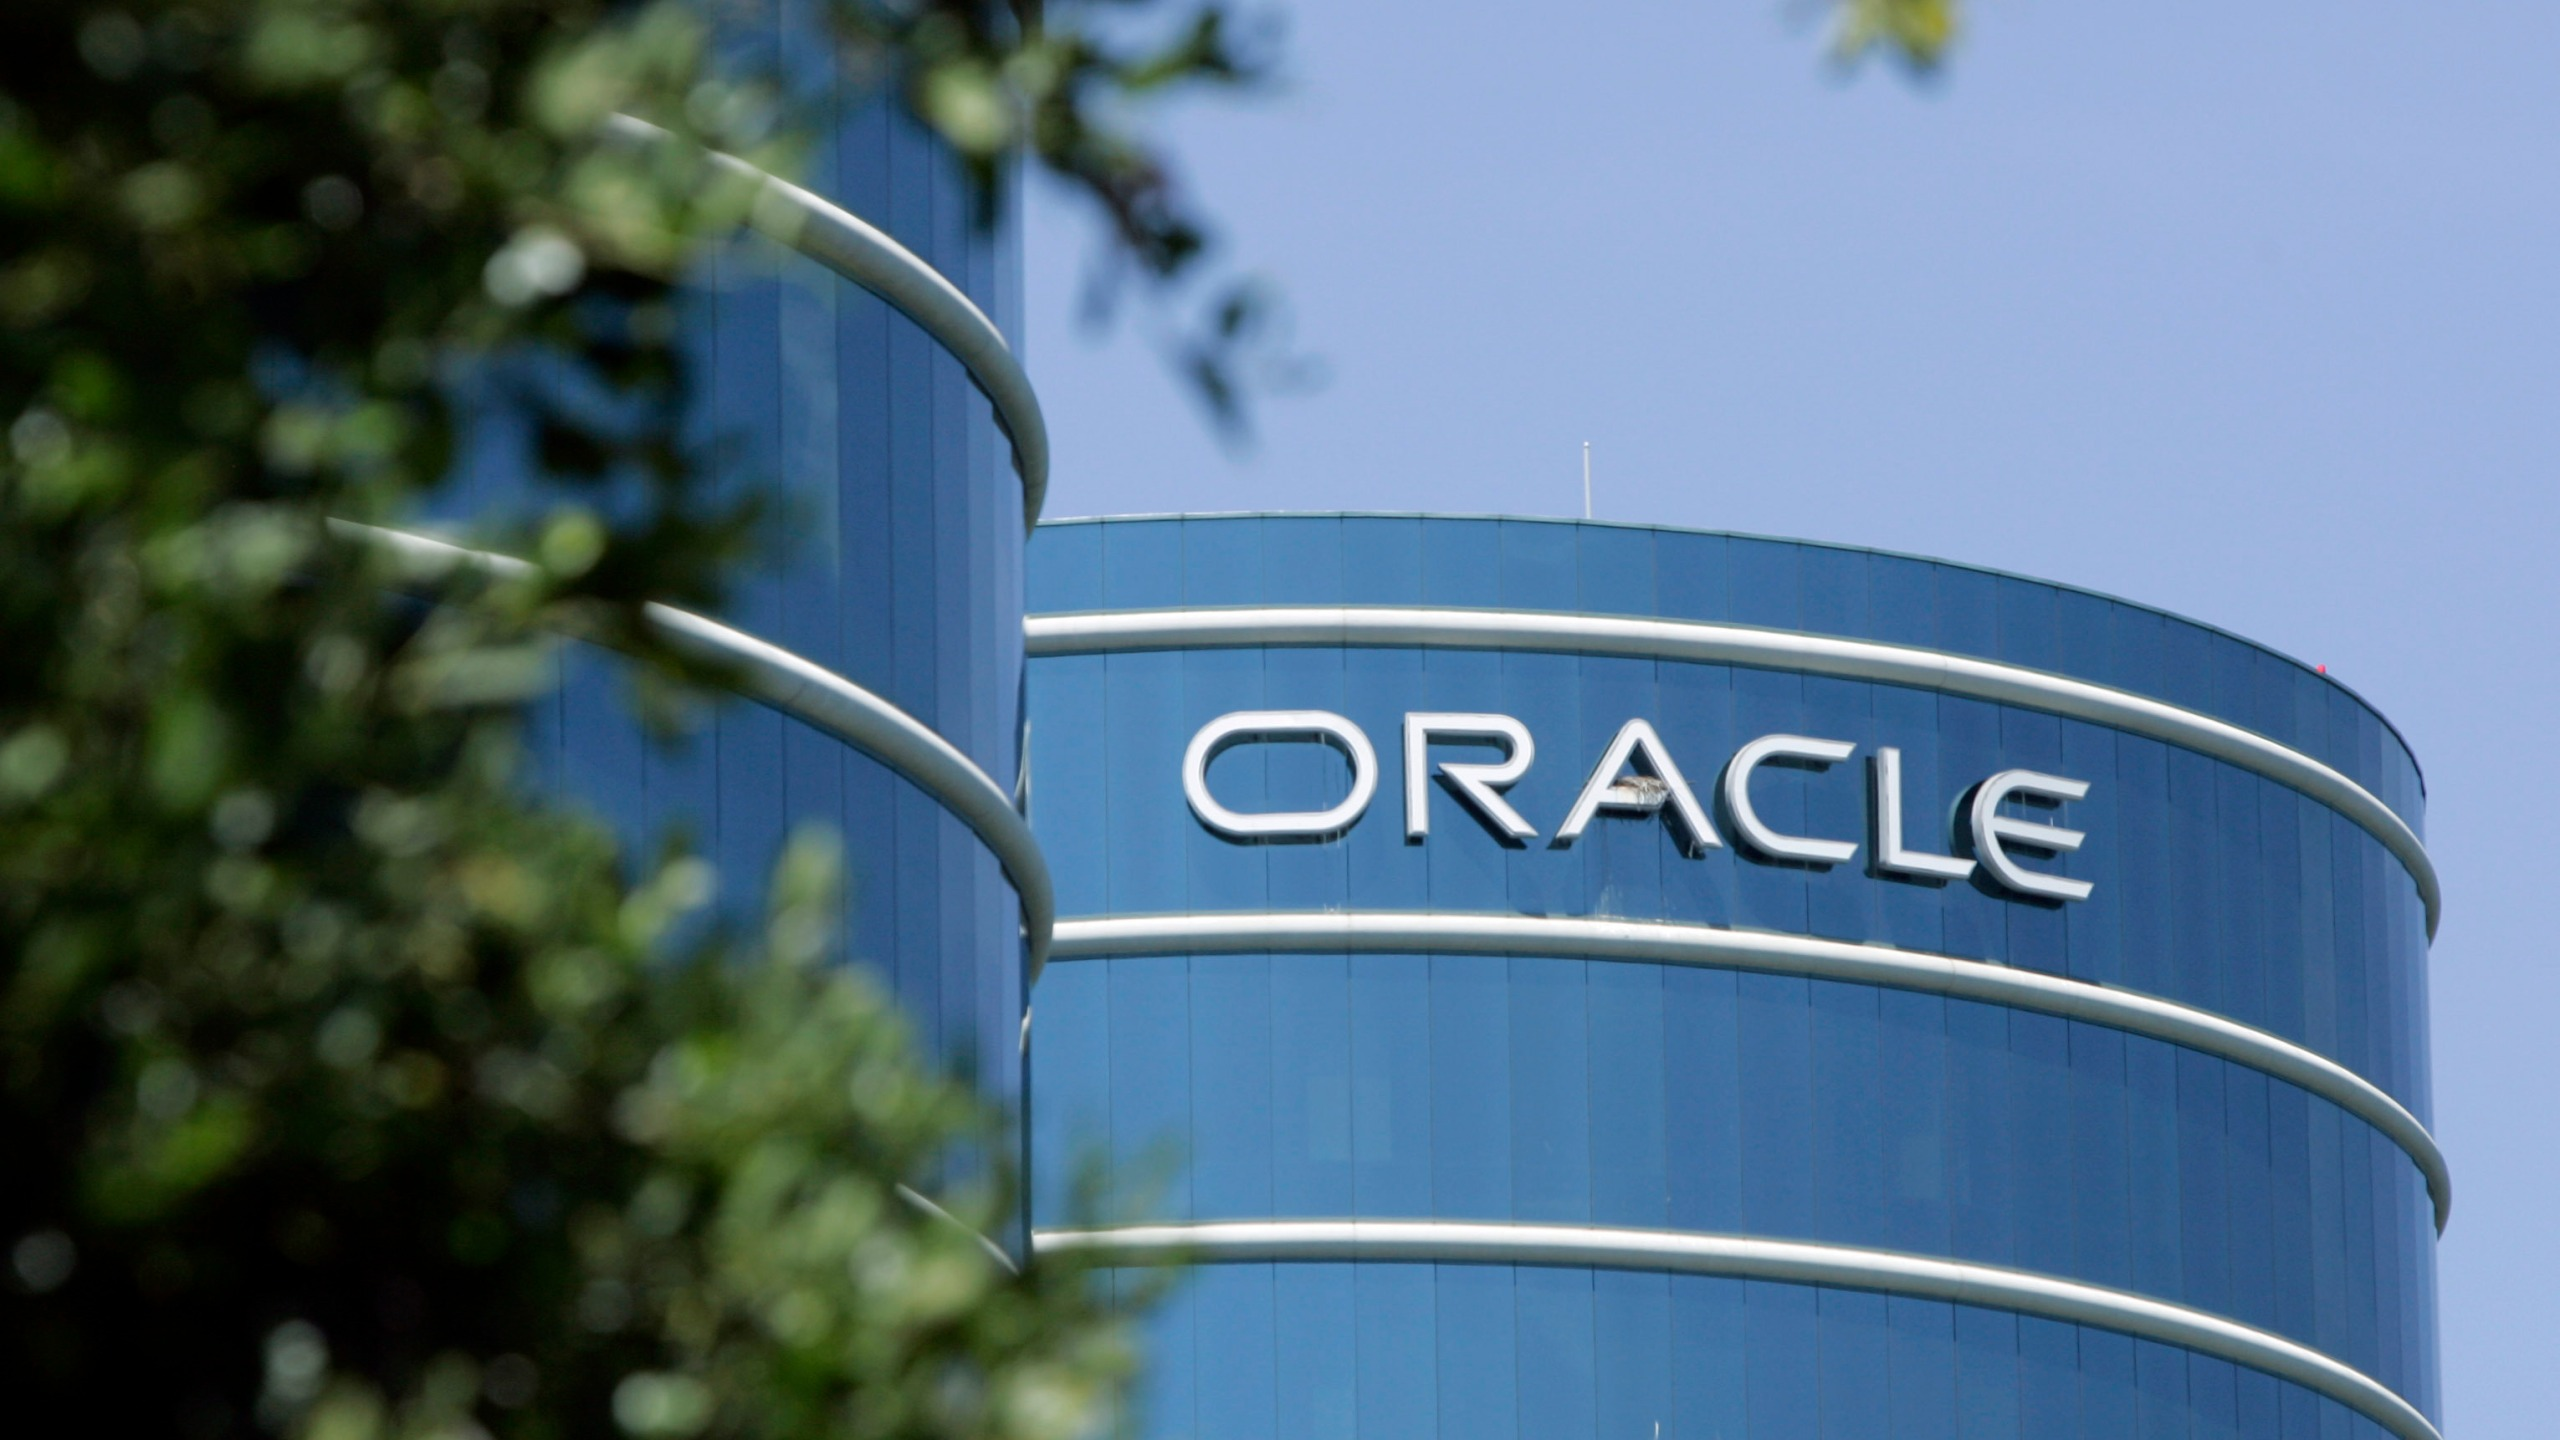 This June 26, 2007 file photo shows the exterior of Oracle Corp. headquarters in Redwood City, Calif. (Paul Sakuma/Associated Press)